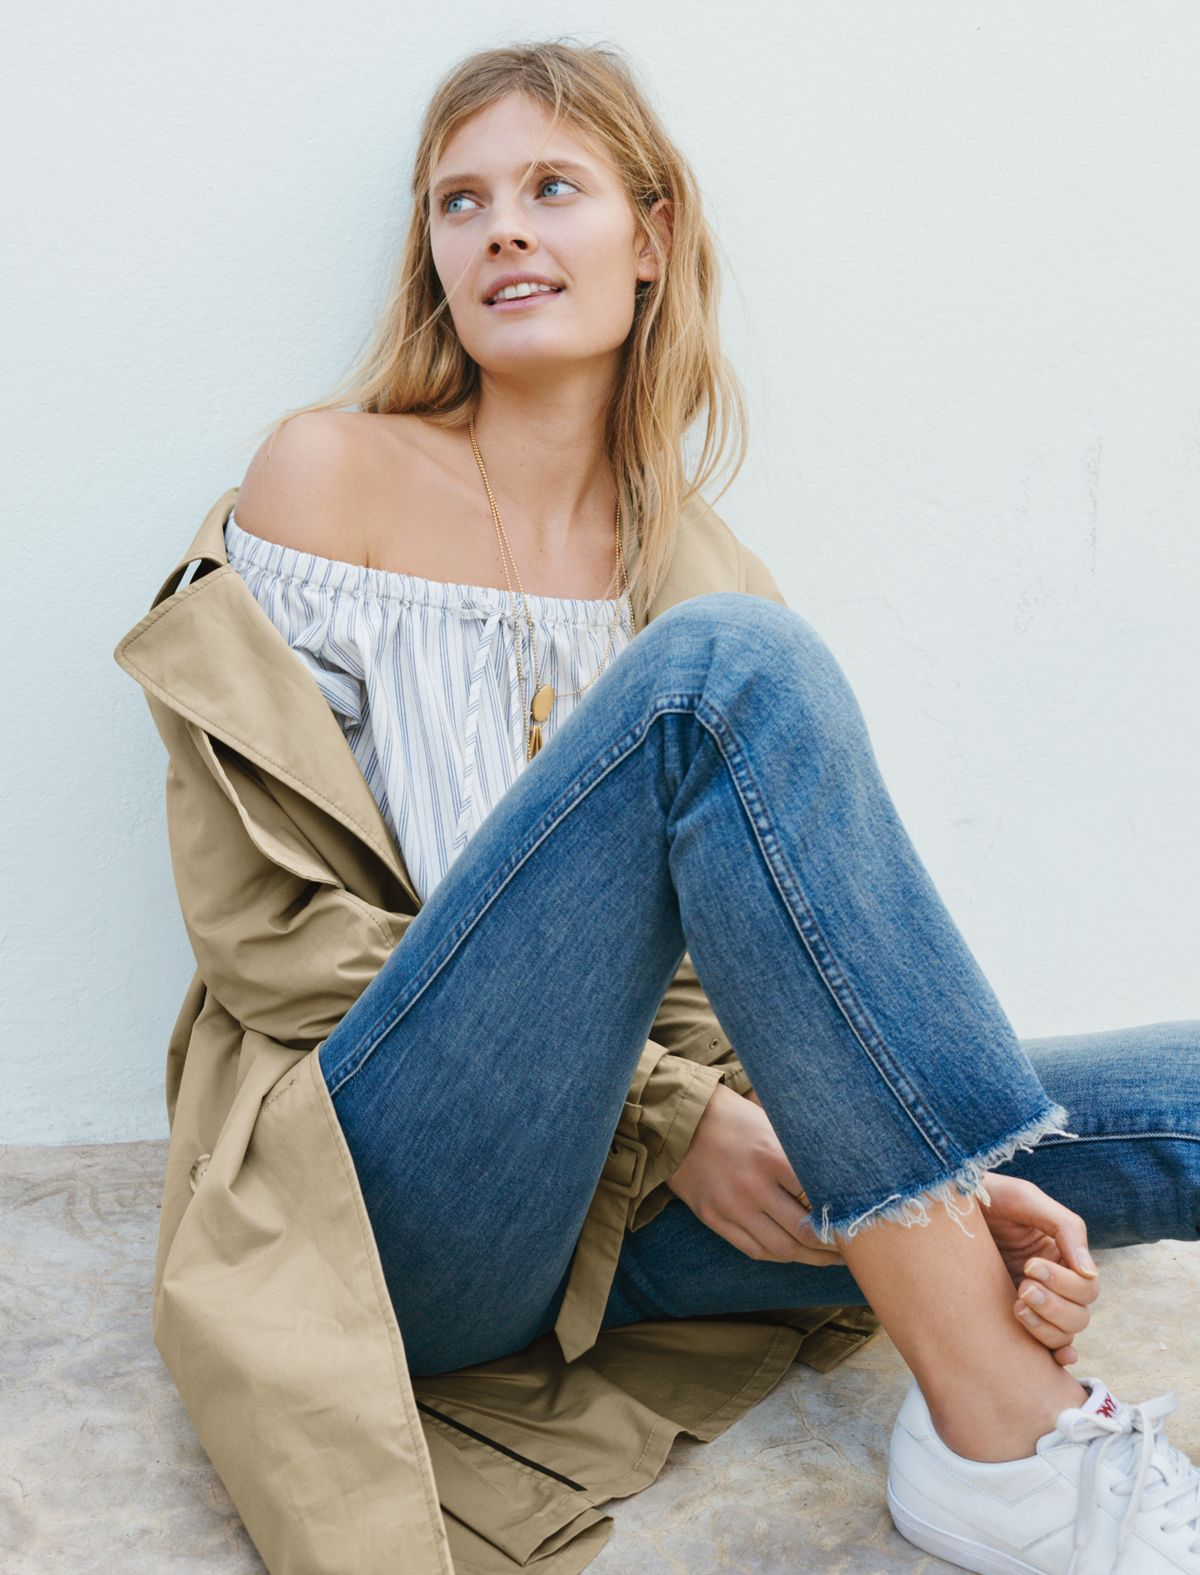 Off-duty womens clothing in madewell spring-summer